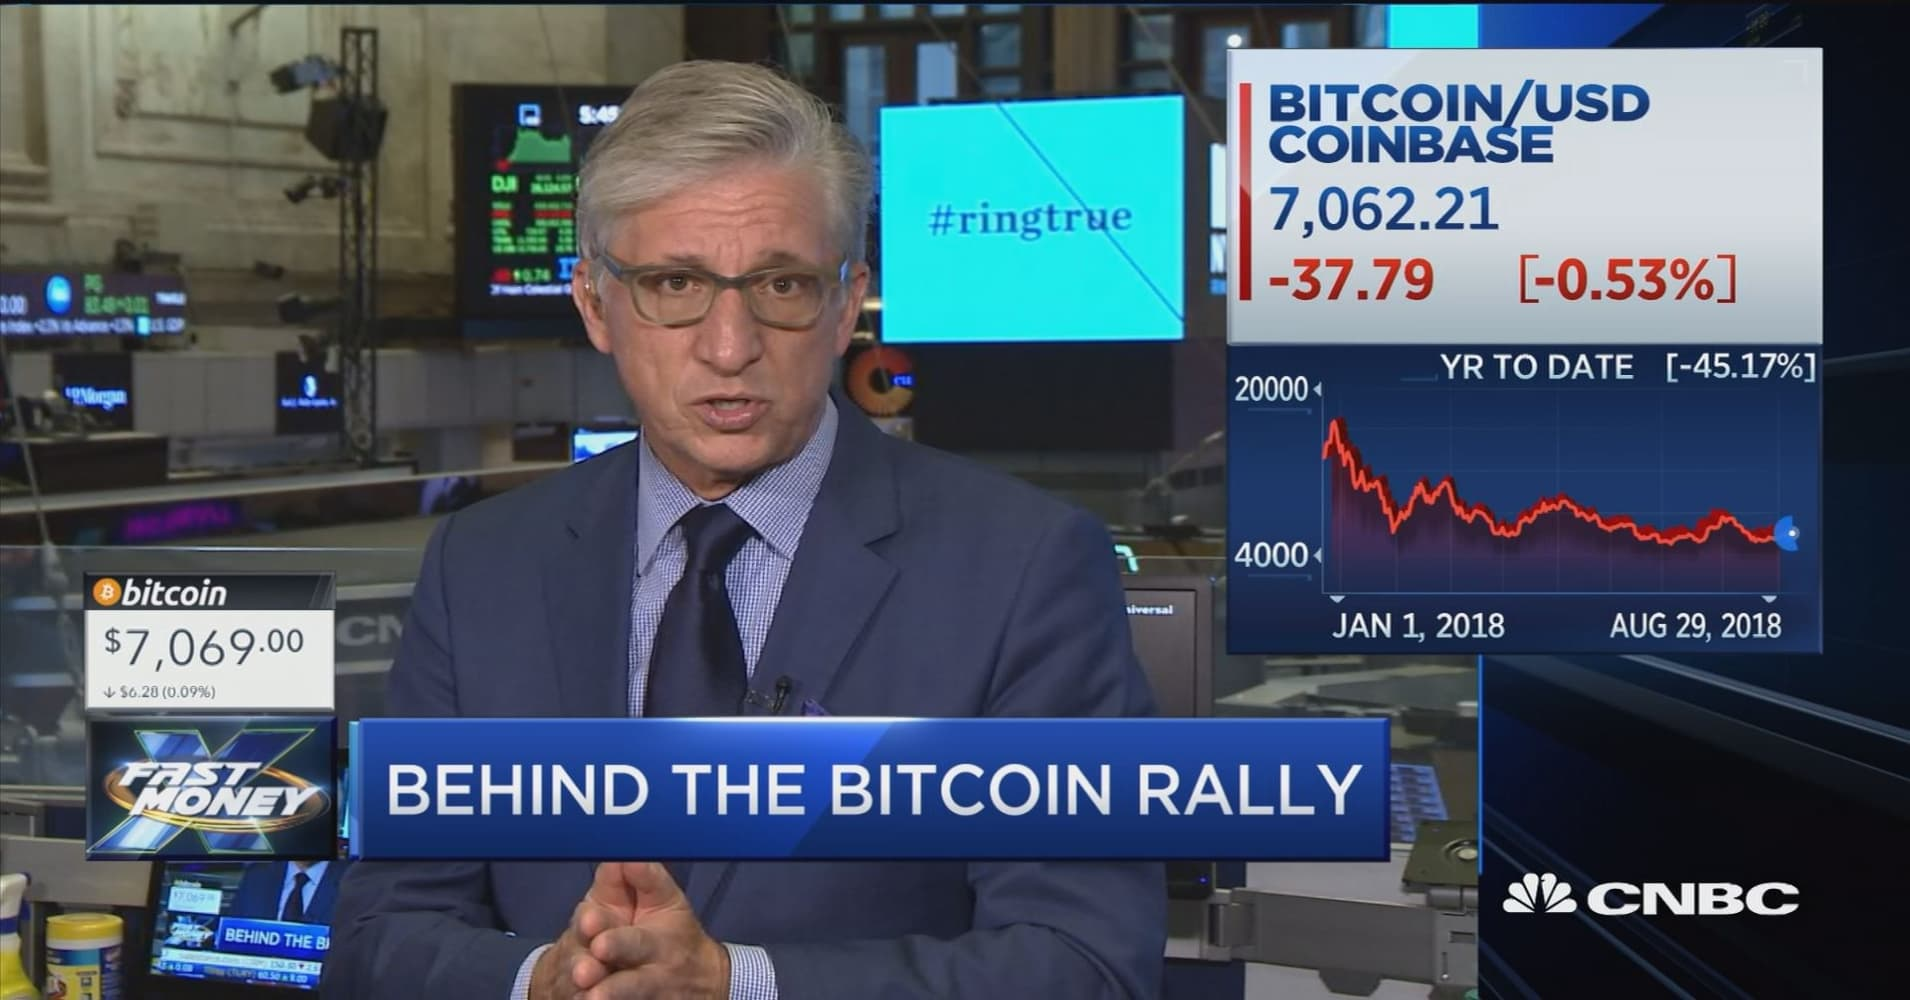 Behind the bitcoin rally